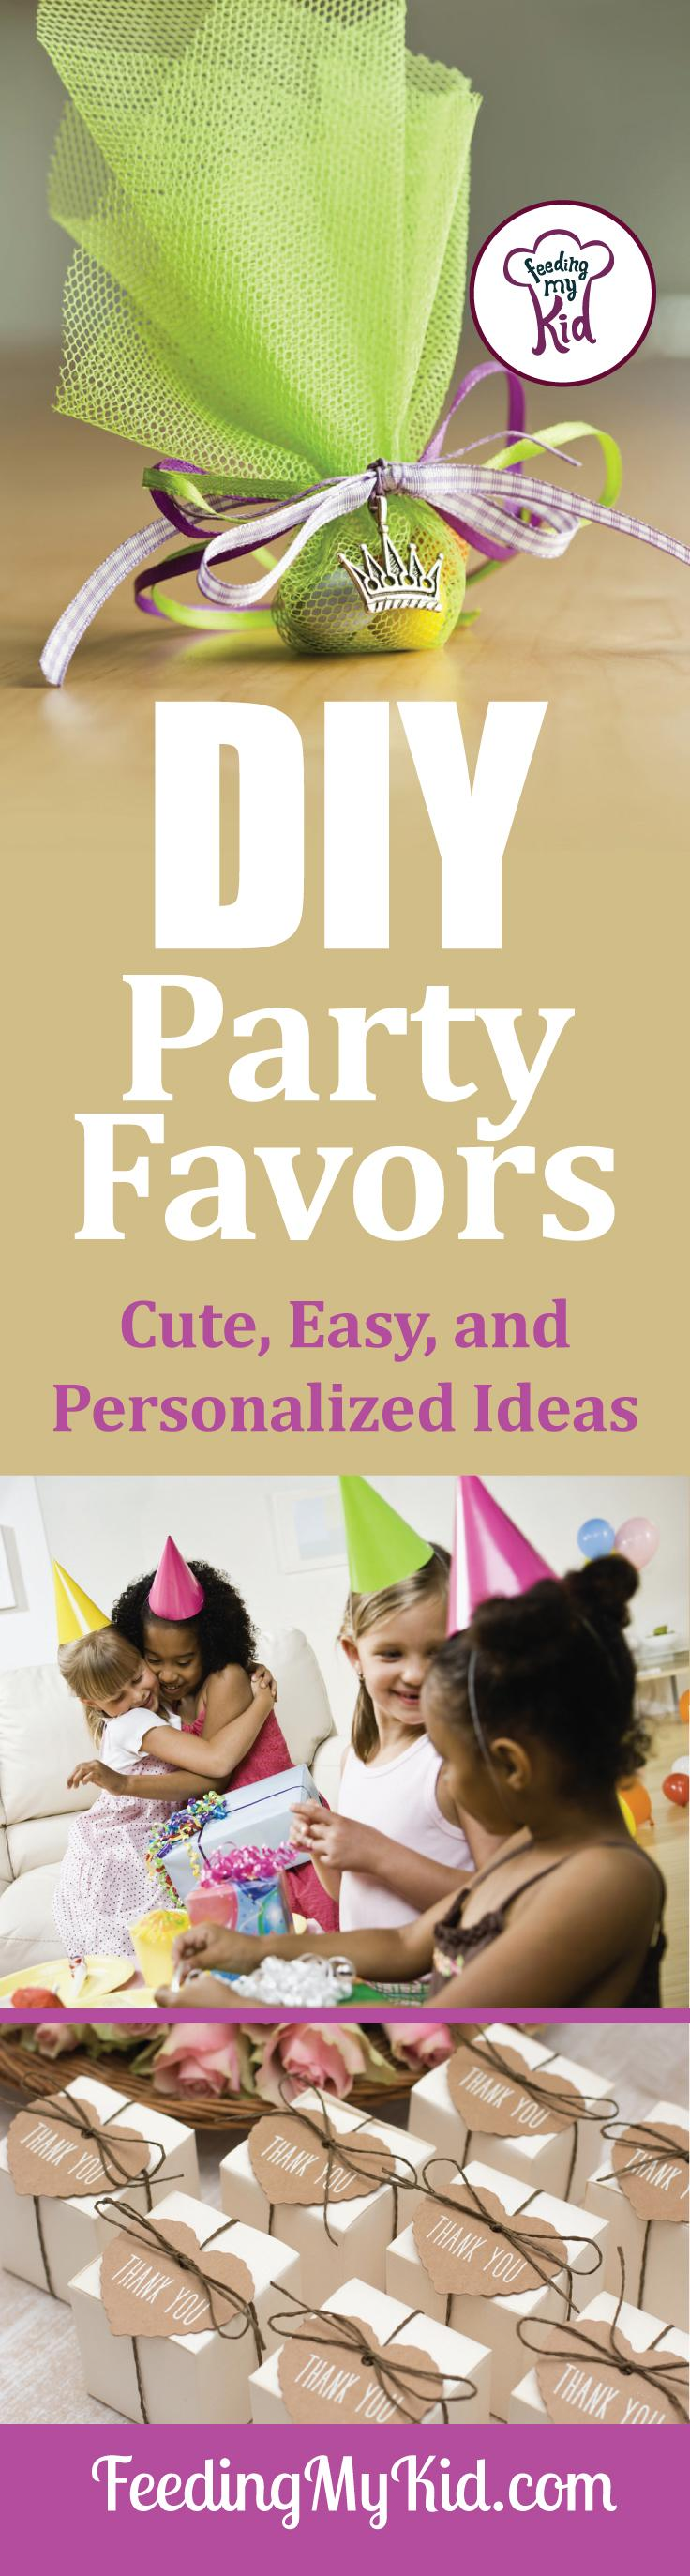 Make your own party favors at home! Get inspired with these DIY party favor ideas that are budget friendly and easy to put together.